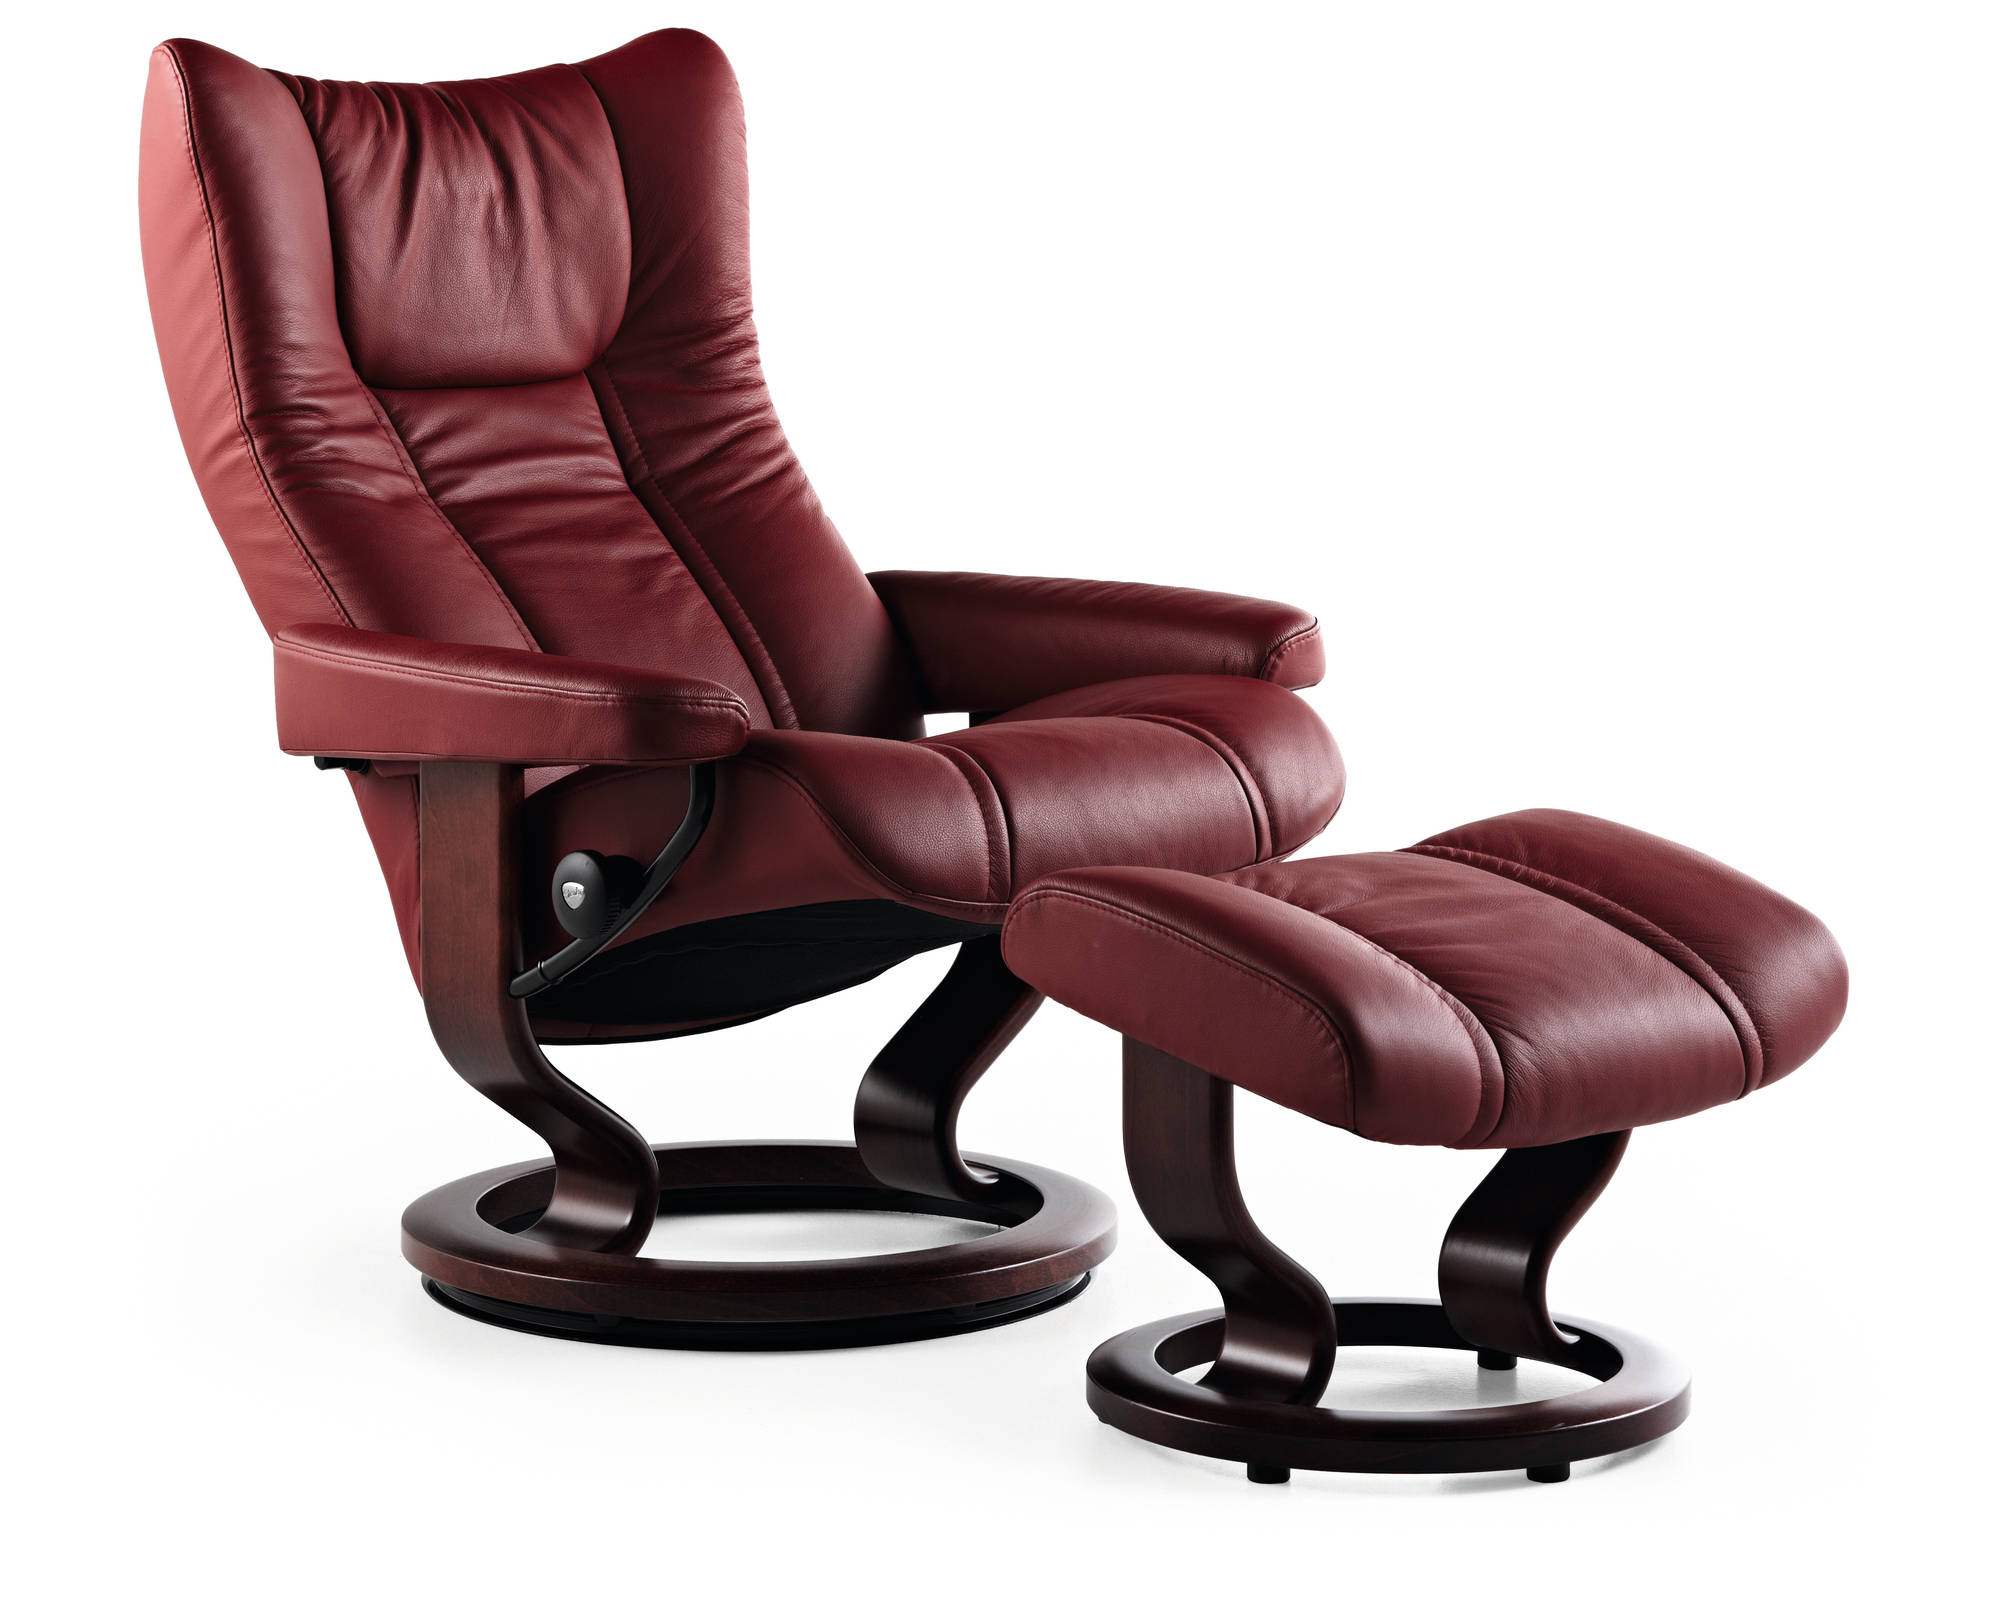 stressless chair repair parts zenergy ball replacement ekornes wing recliners and chairs fast